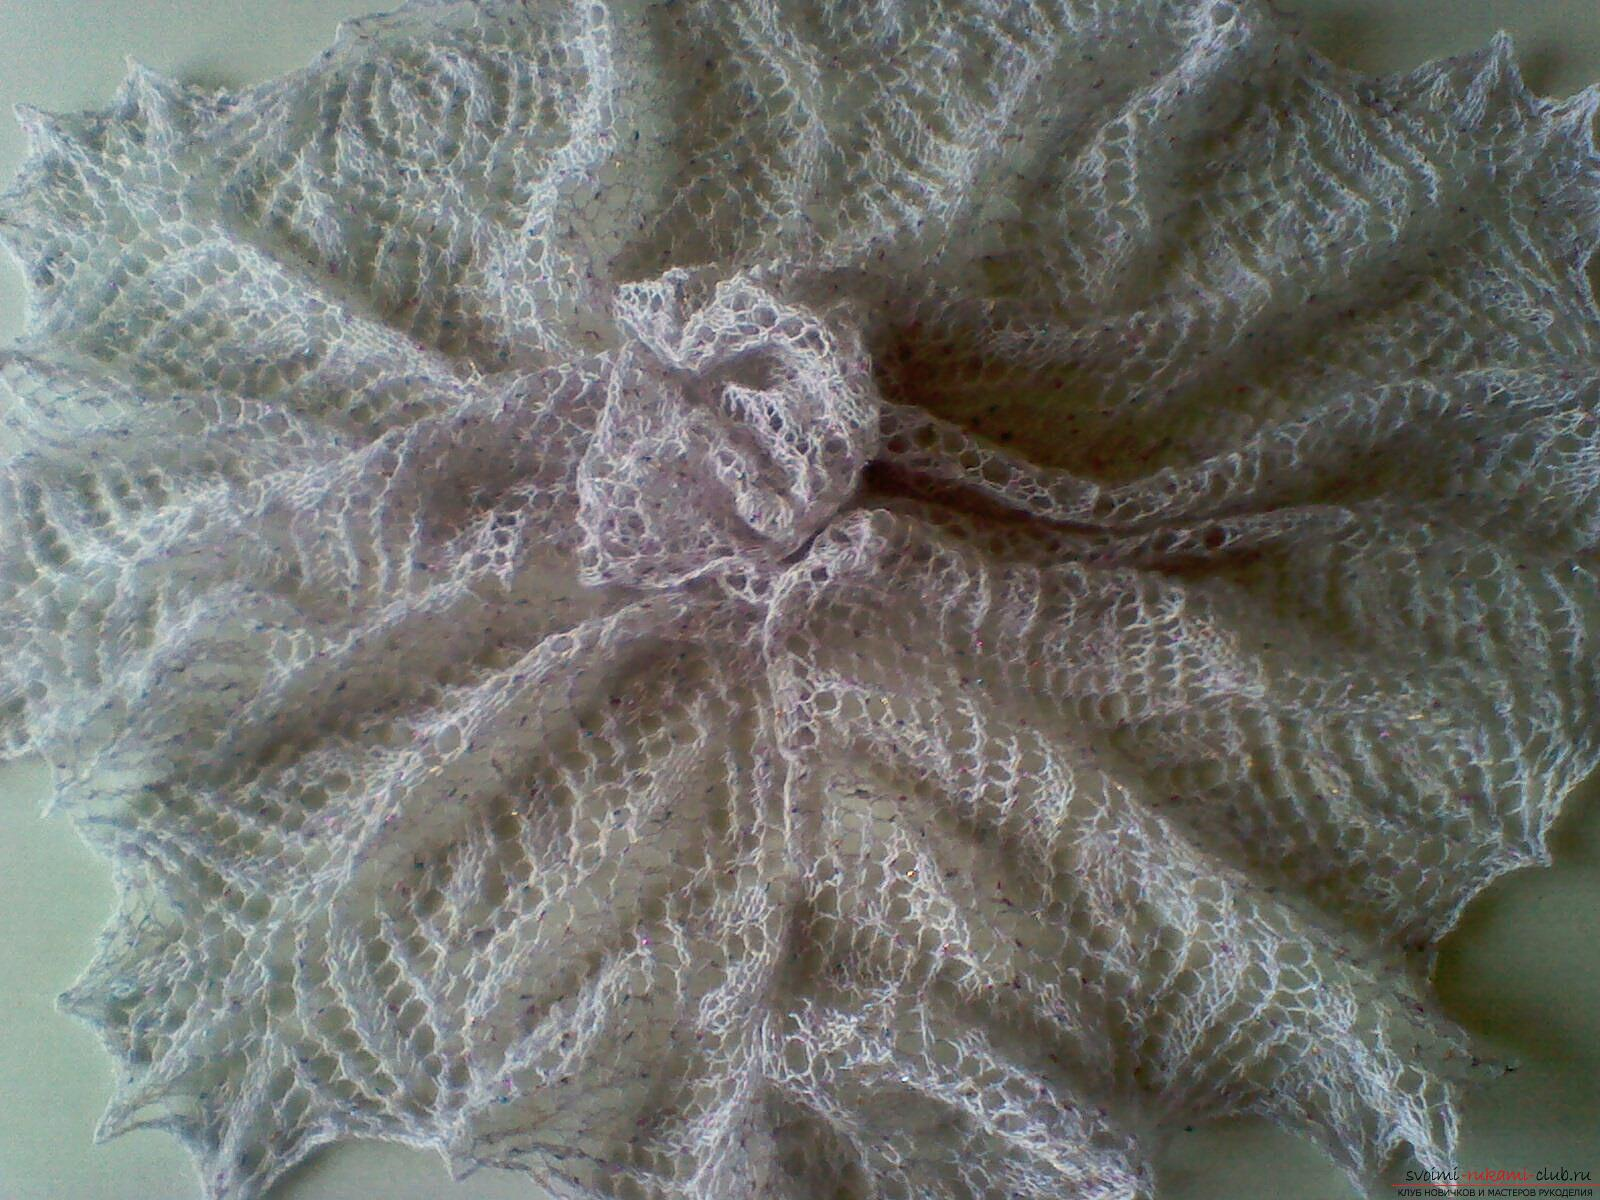 Description knitting the openwork white shawls with knitting needles. Photo №7